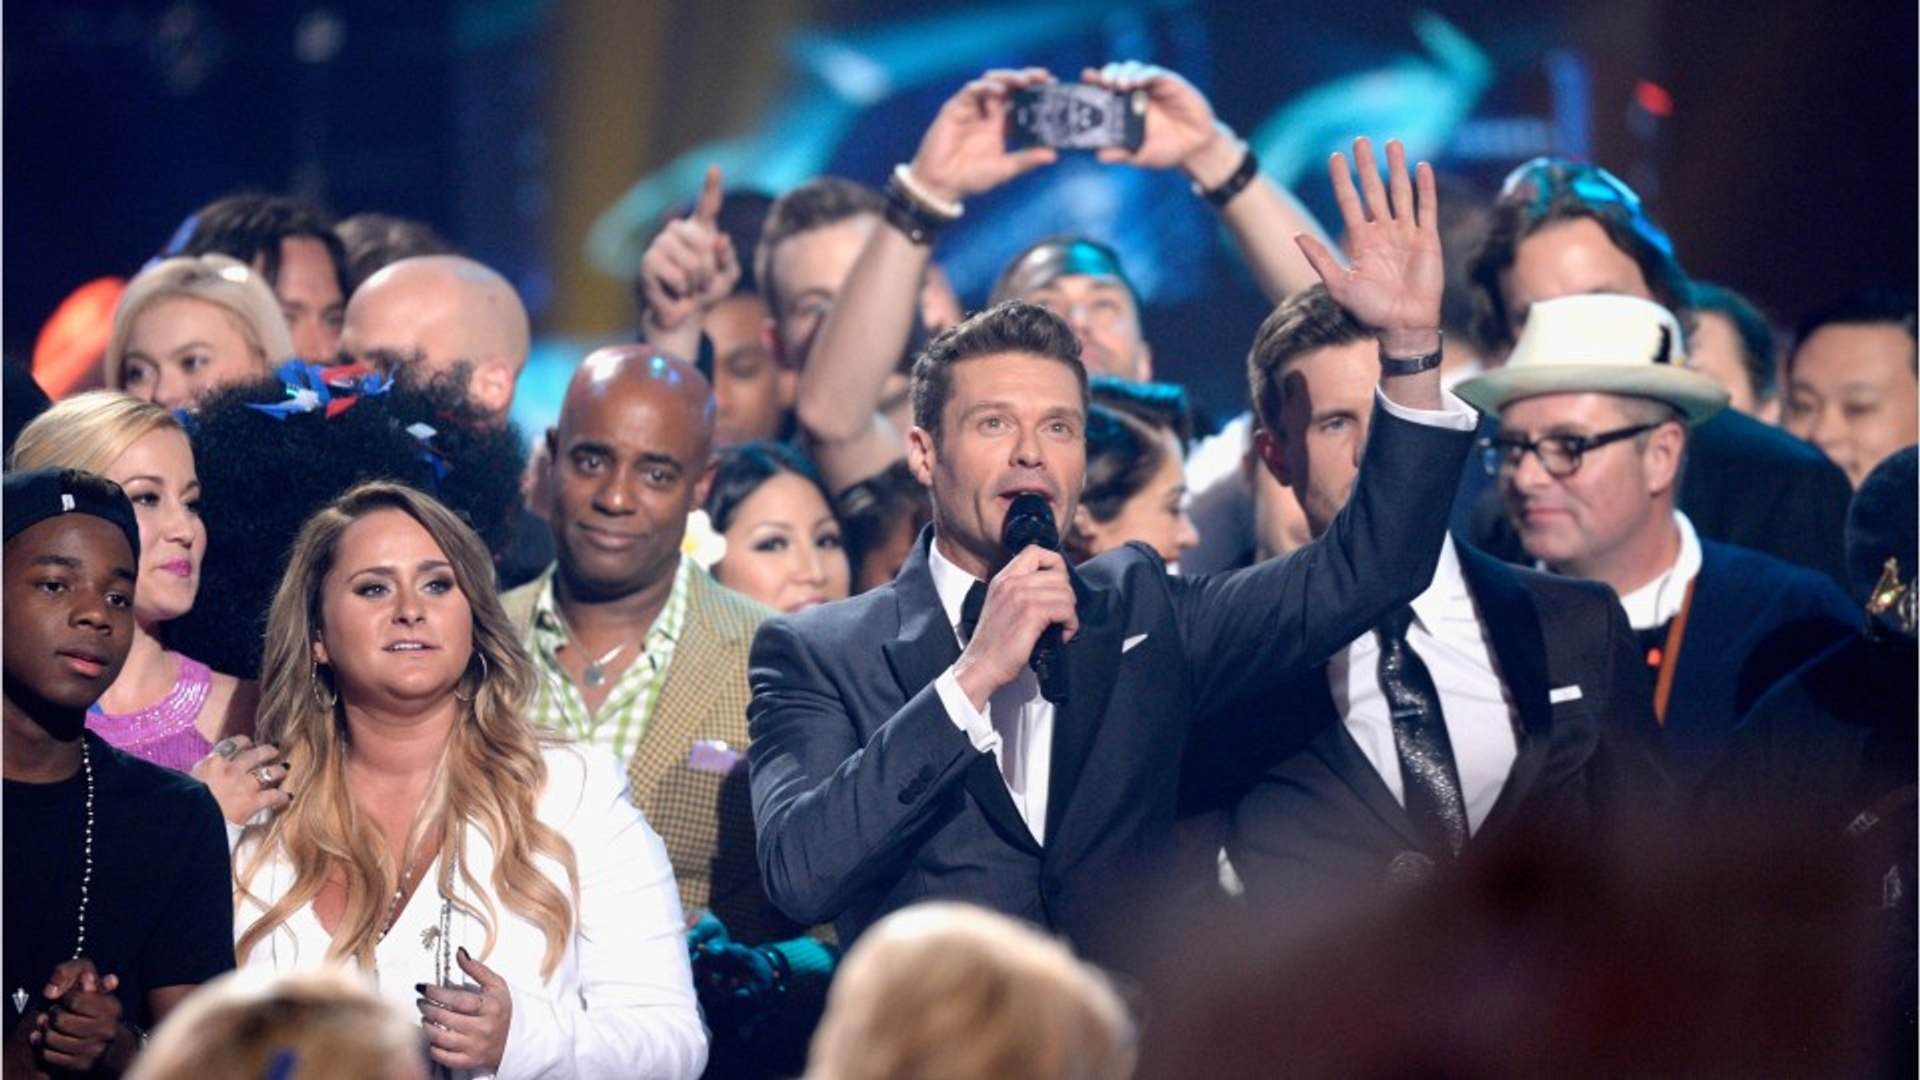 'American Idol' Could Be Making A Come Back in 2018